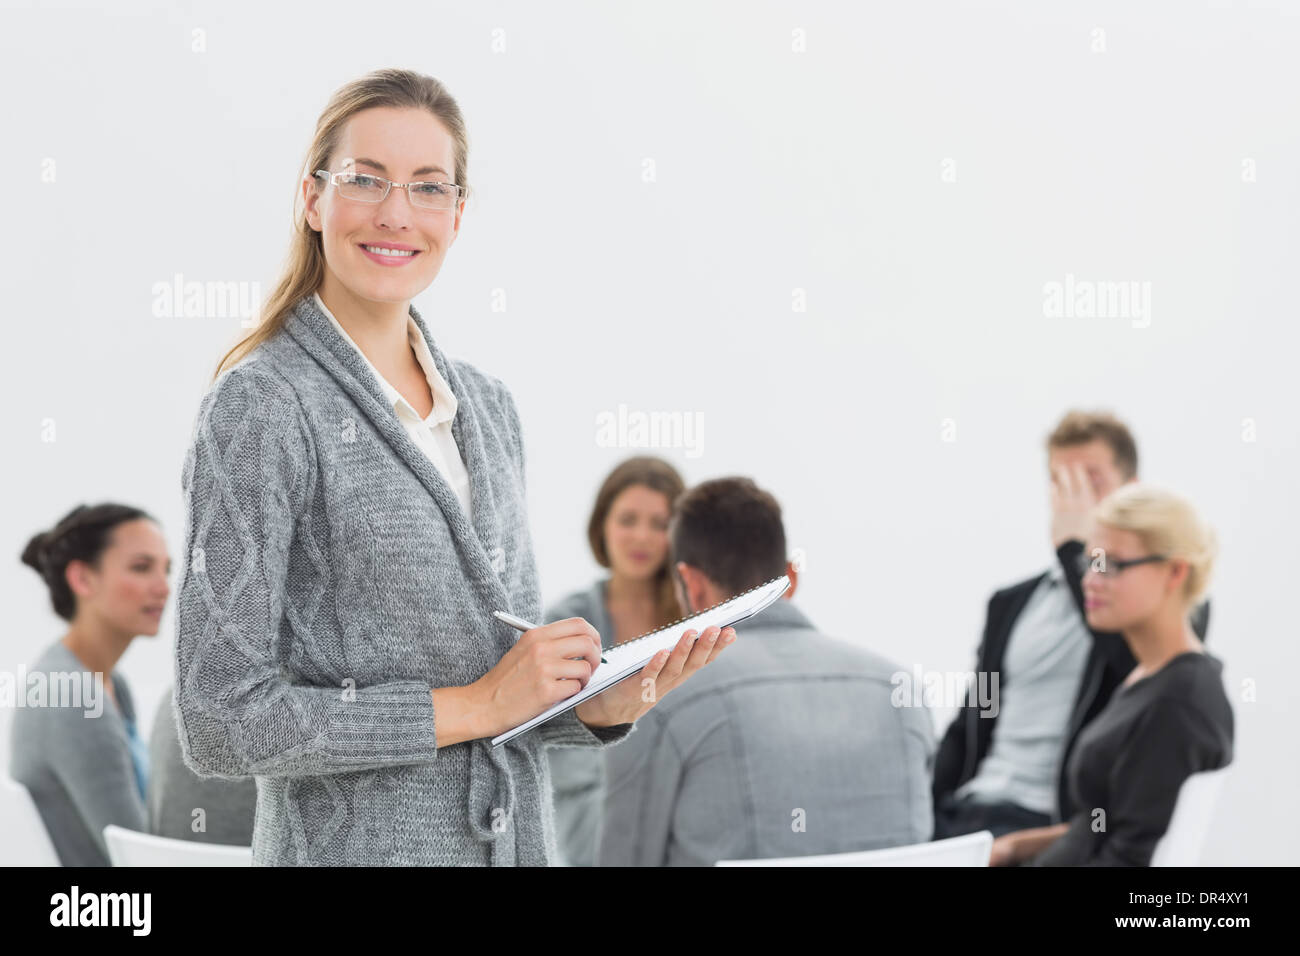 Portrait of therapist with group therapy in session in background - Stock Image